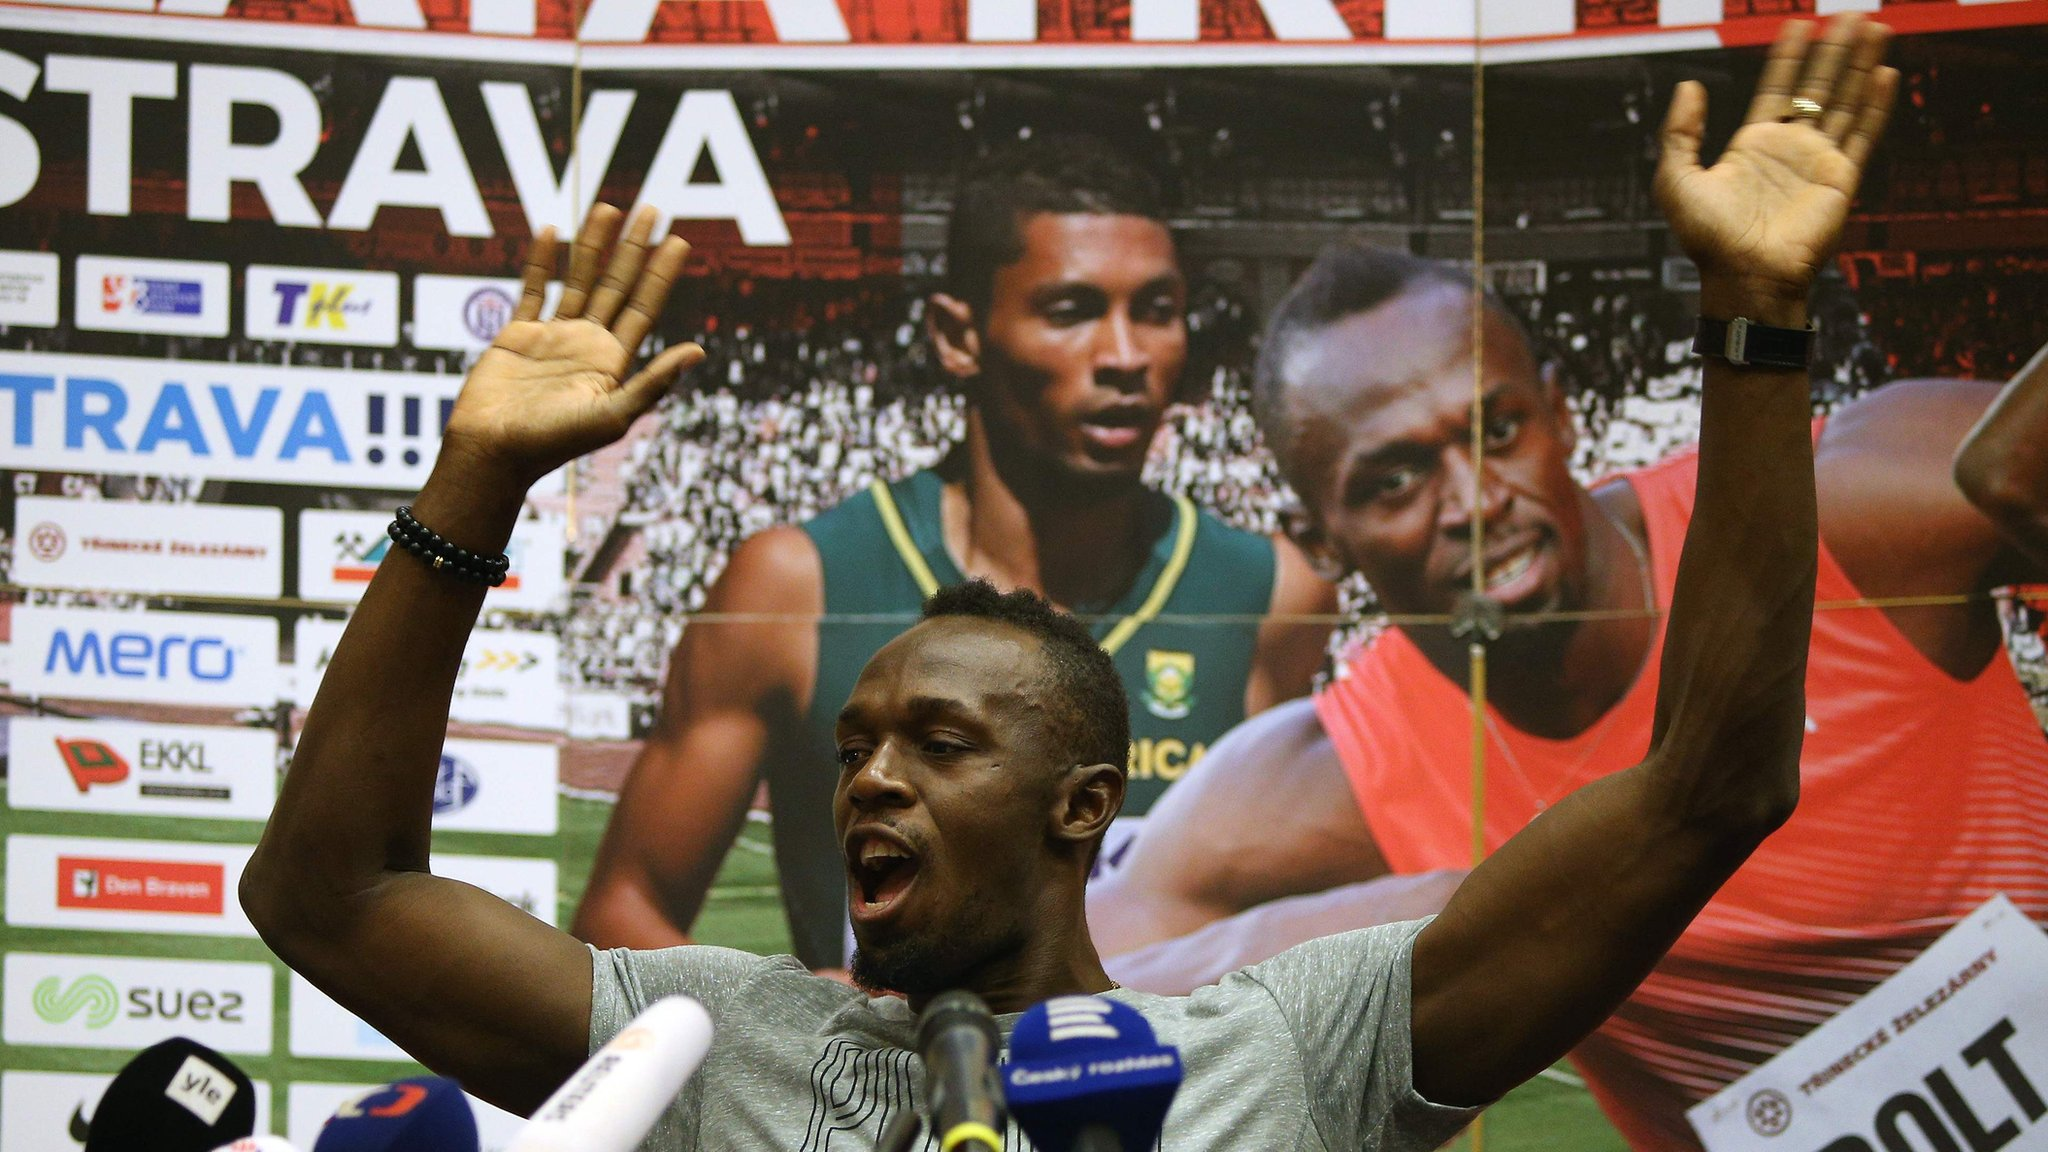 Bolt 'may carry on after World Championships'